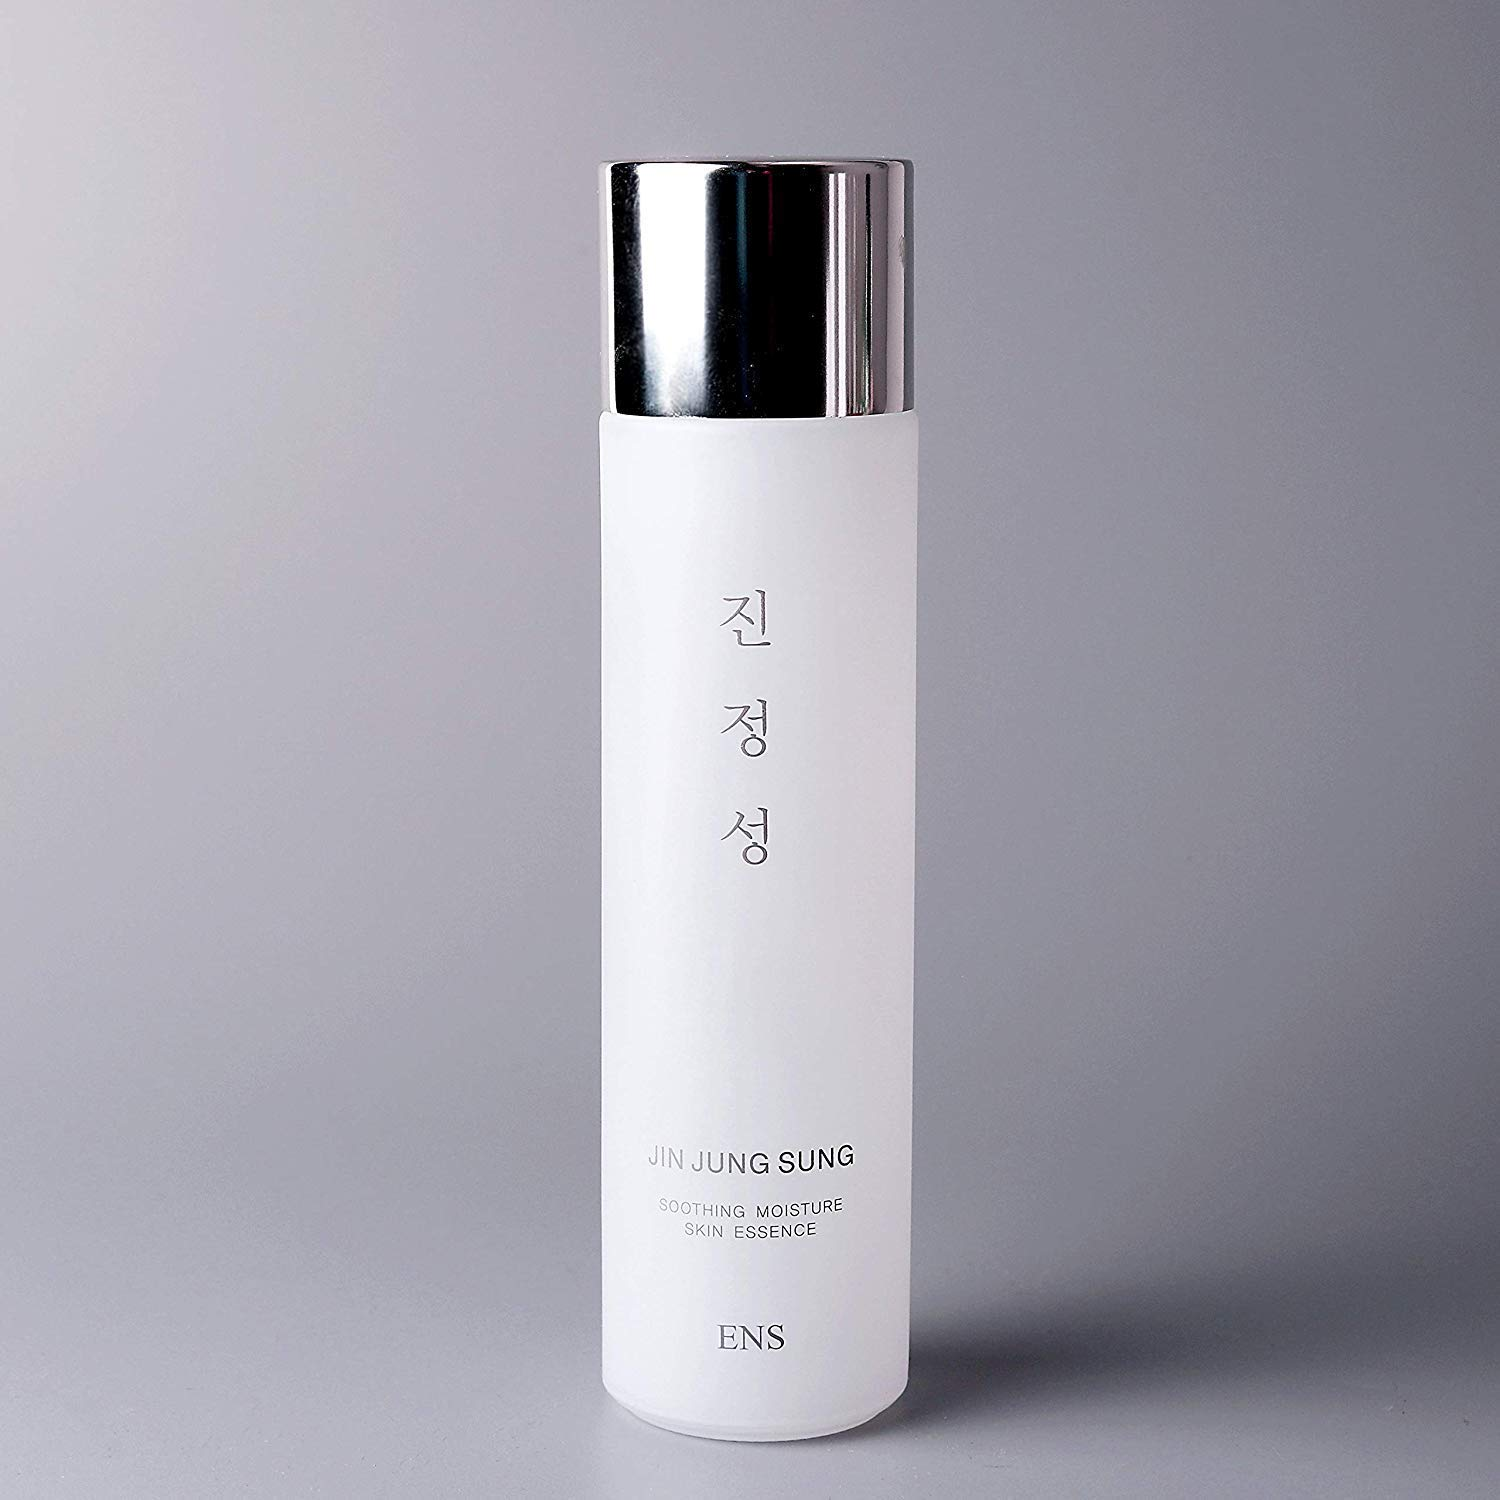 Jin Jung Sung Soothing Moisture Essence Serum 5.07 fl.oz. | Light, Natural, Moisturizing Korean-Made Facial Essence Serum for All Skin Types | Made With Niacinamide, Beta-Glucan, Hyaluronate, Ceramide by ENSSKIN